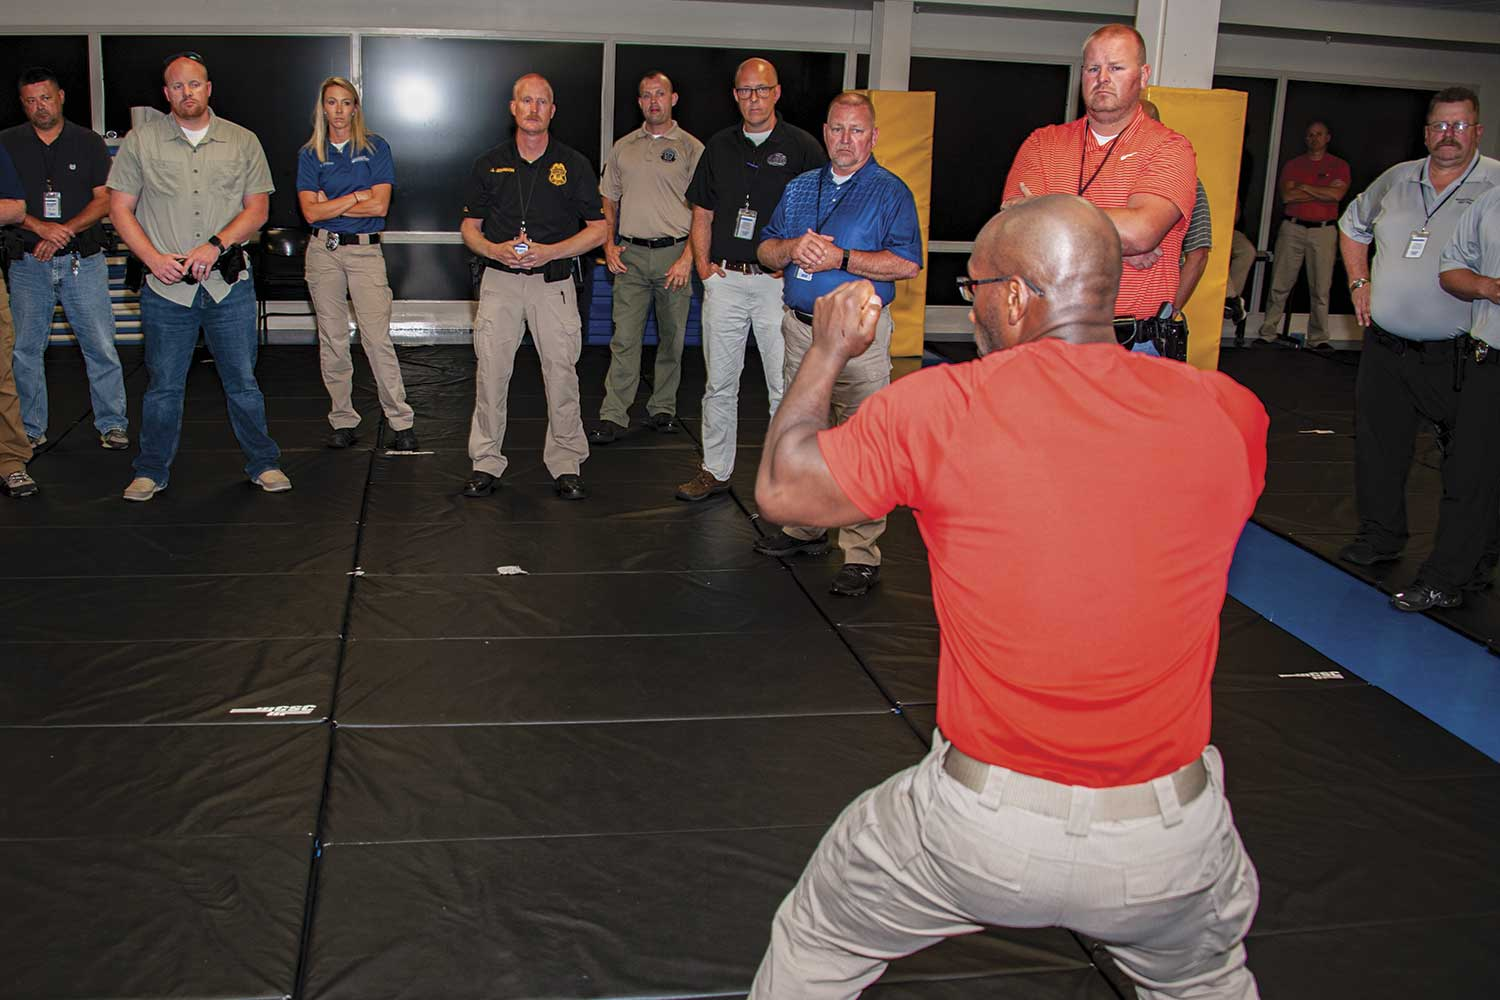 A portion of the new SRO curriculum focuses on defensive tactics, DOCJT instructor Bill Eckler said. Officers are taught they must deal with juveniles differently than adults. To that end, they are shown different pressure points and handcuffing techniques. (Photo by Jim Robertson)